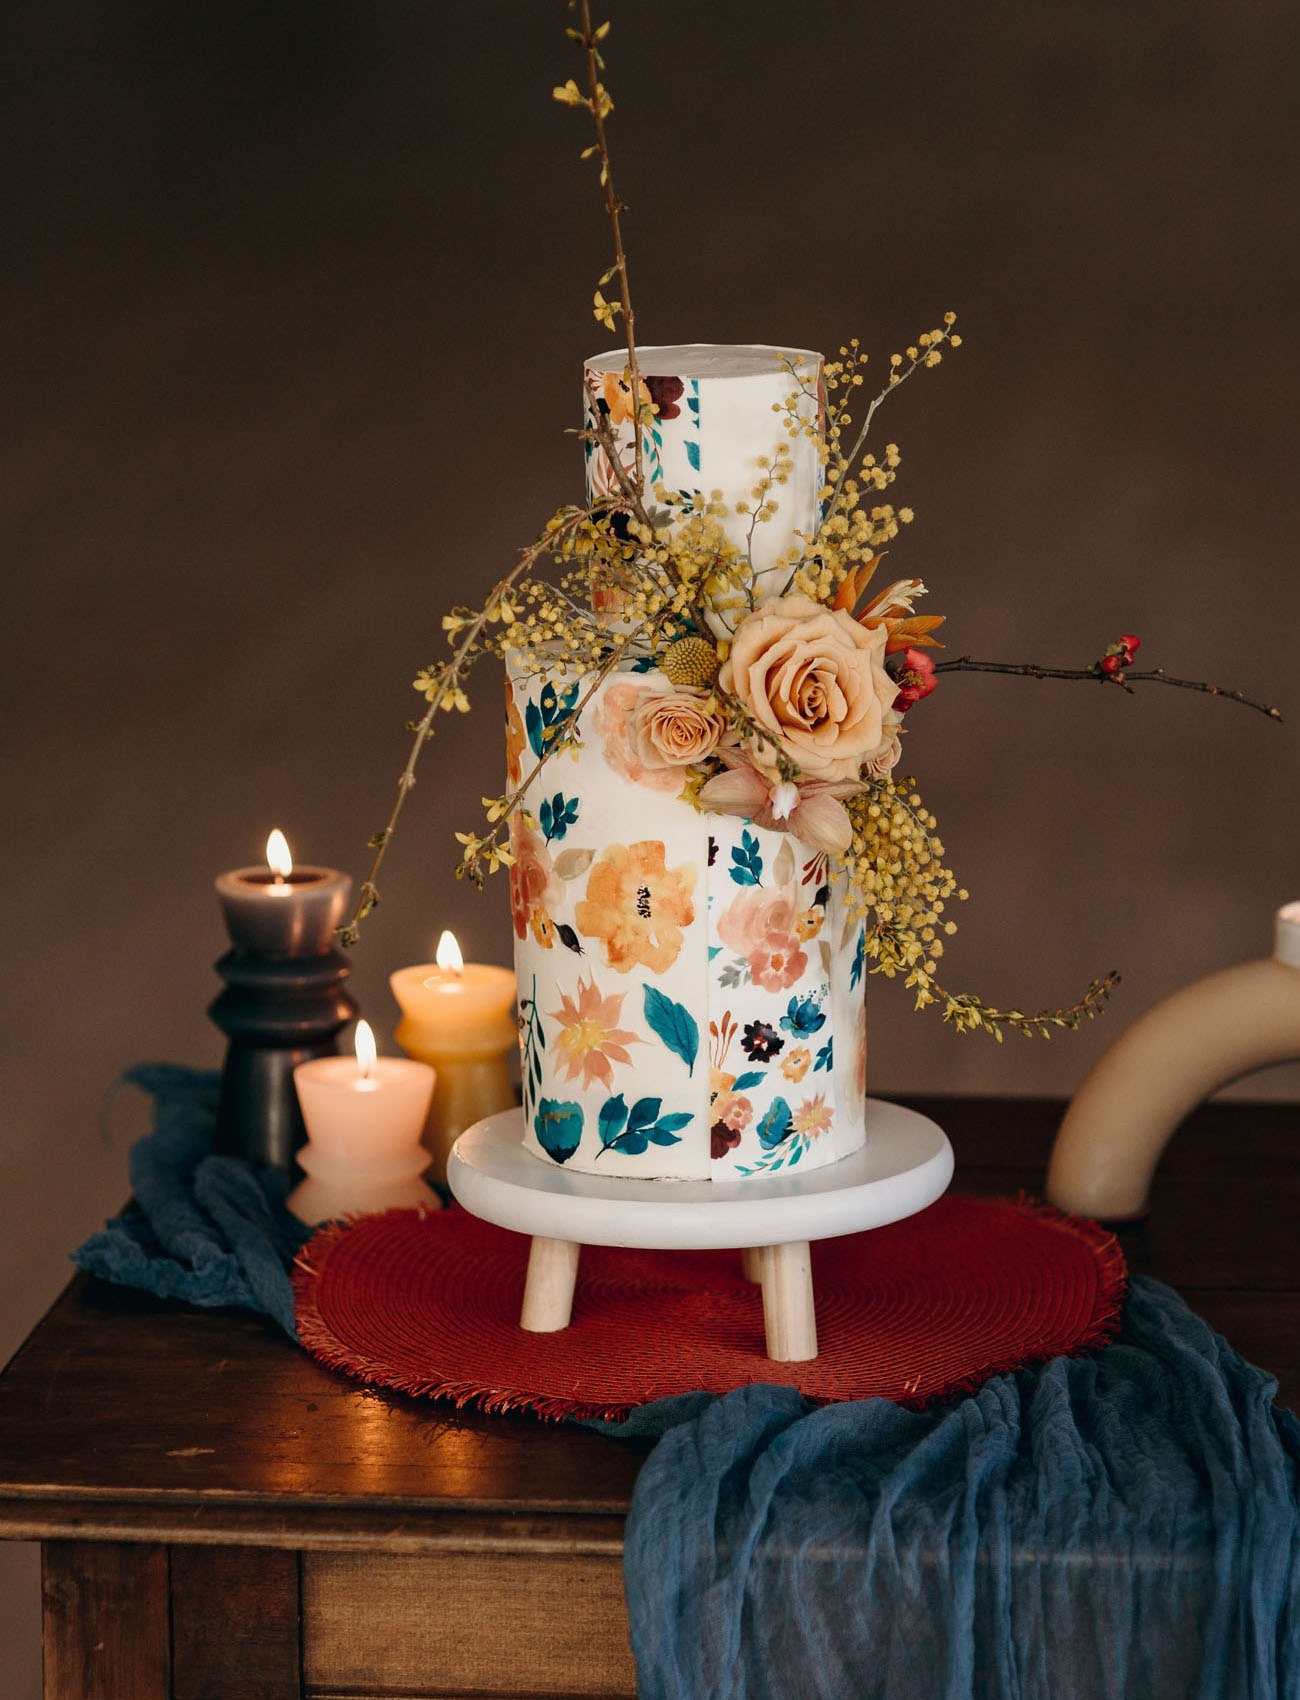 The wedding cake was a floral one, decorated with the same blooms and blooming branches